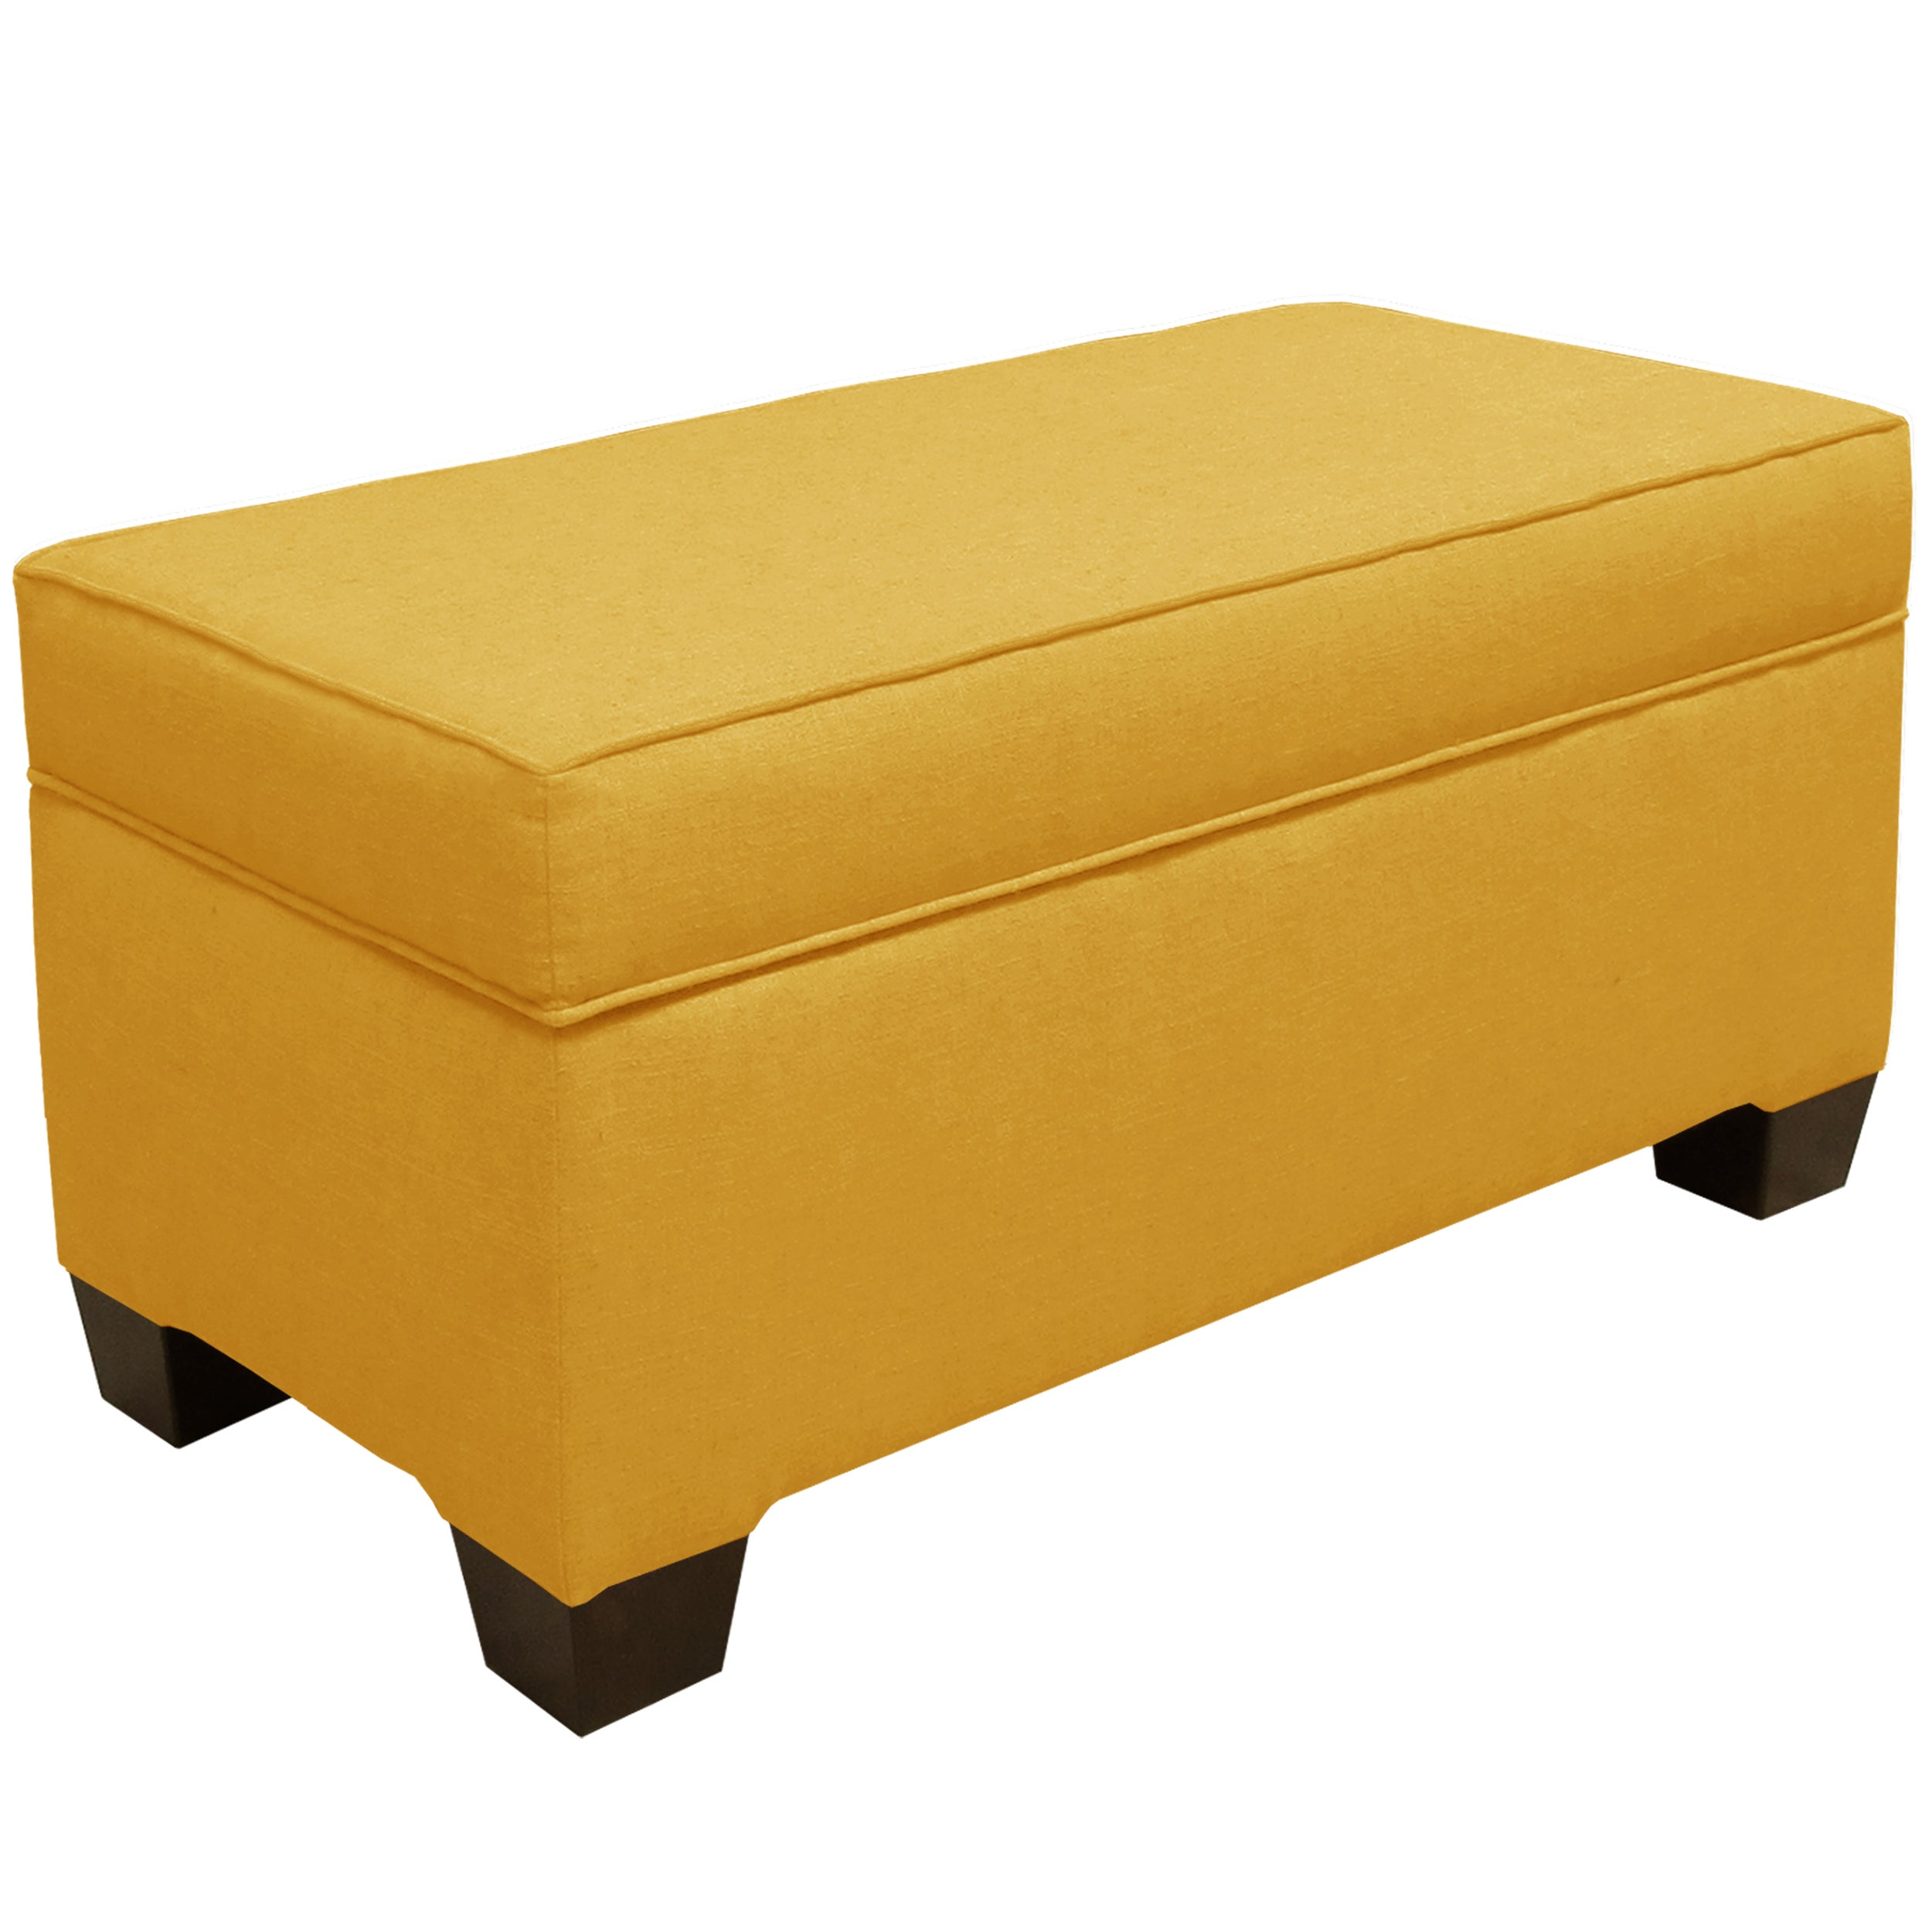 Groovy Skyline Furniture Linen French Yellow Storage Bench N A Gmtry Best Dining Table And Chair Ideas Images Gmtryco